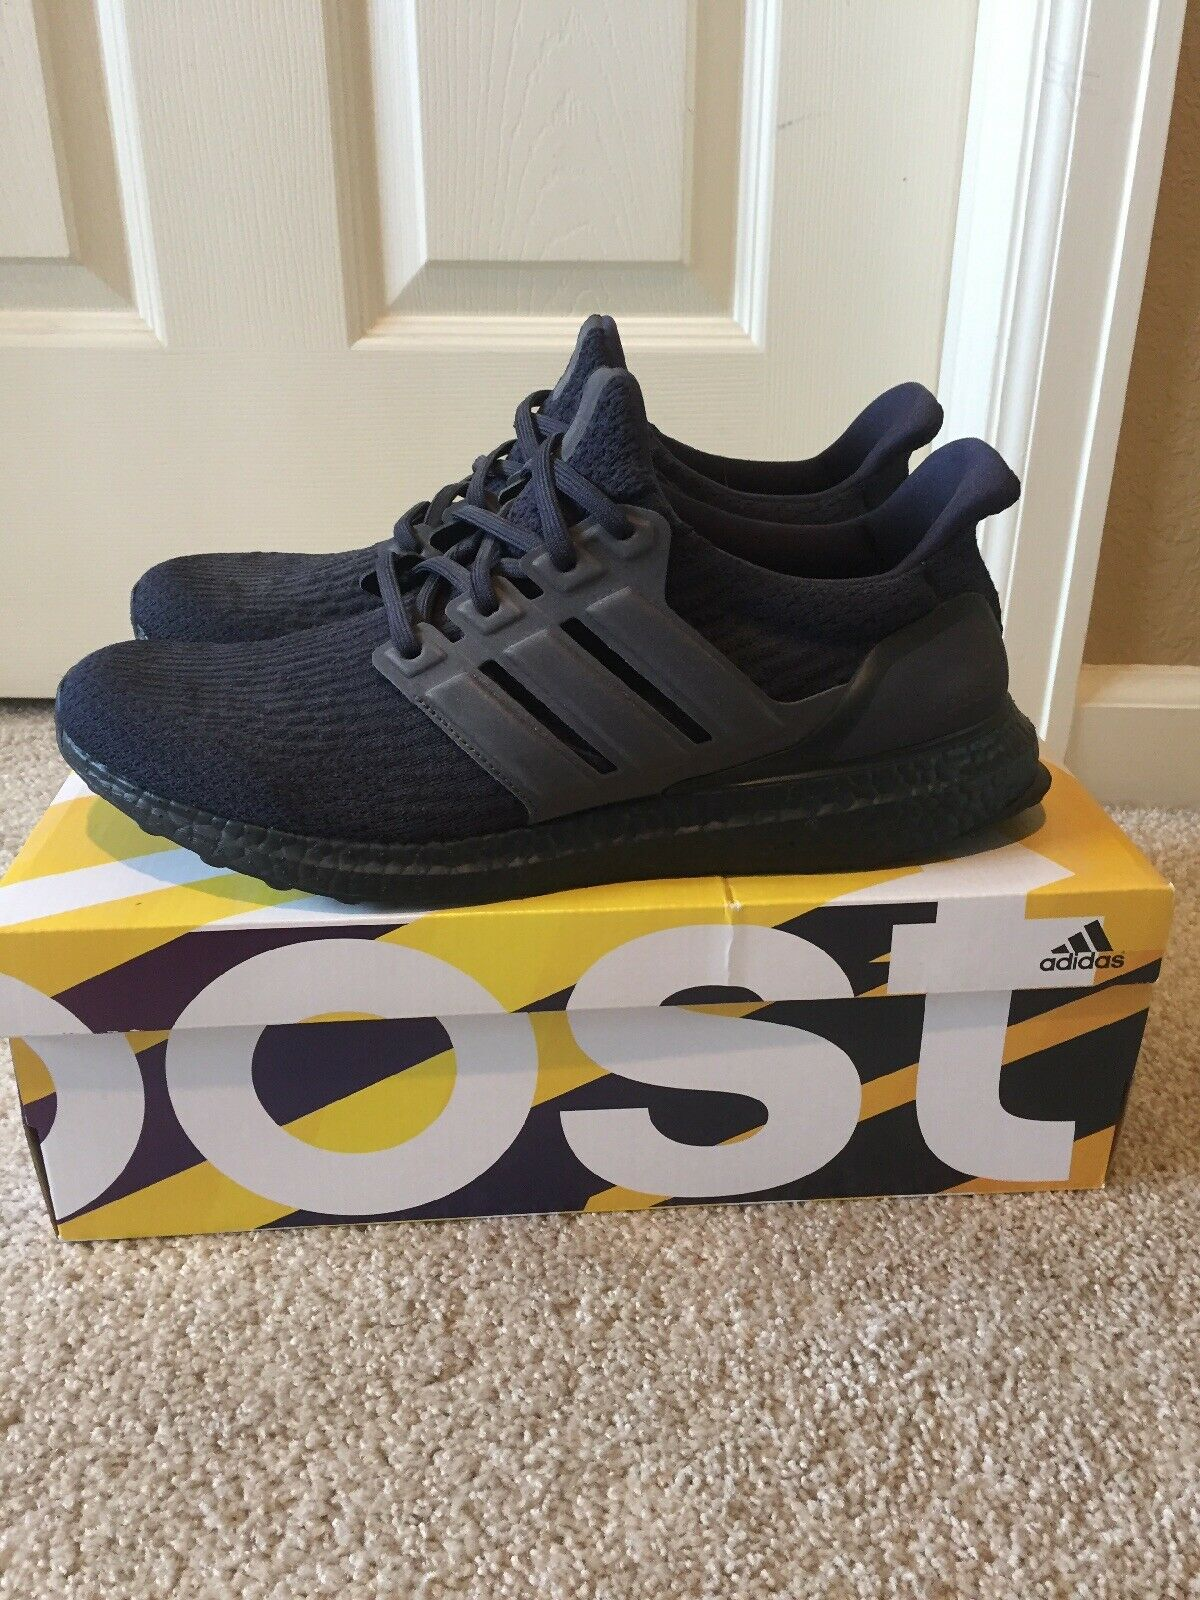 Adidas Ultraboost Limited Edition Xeno Size 11.5